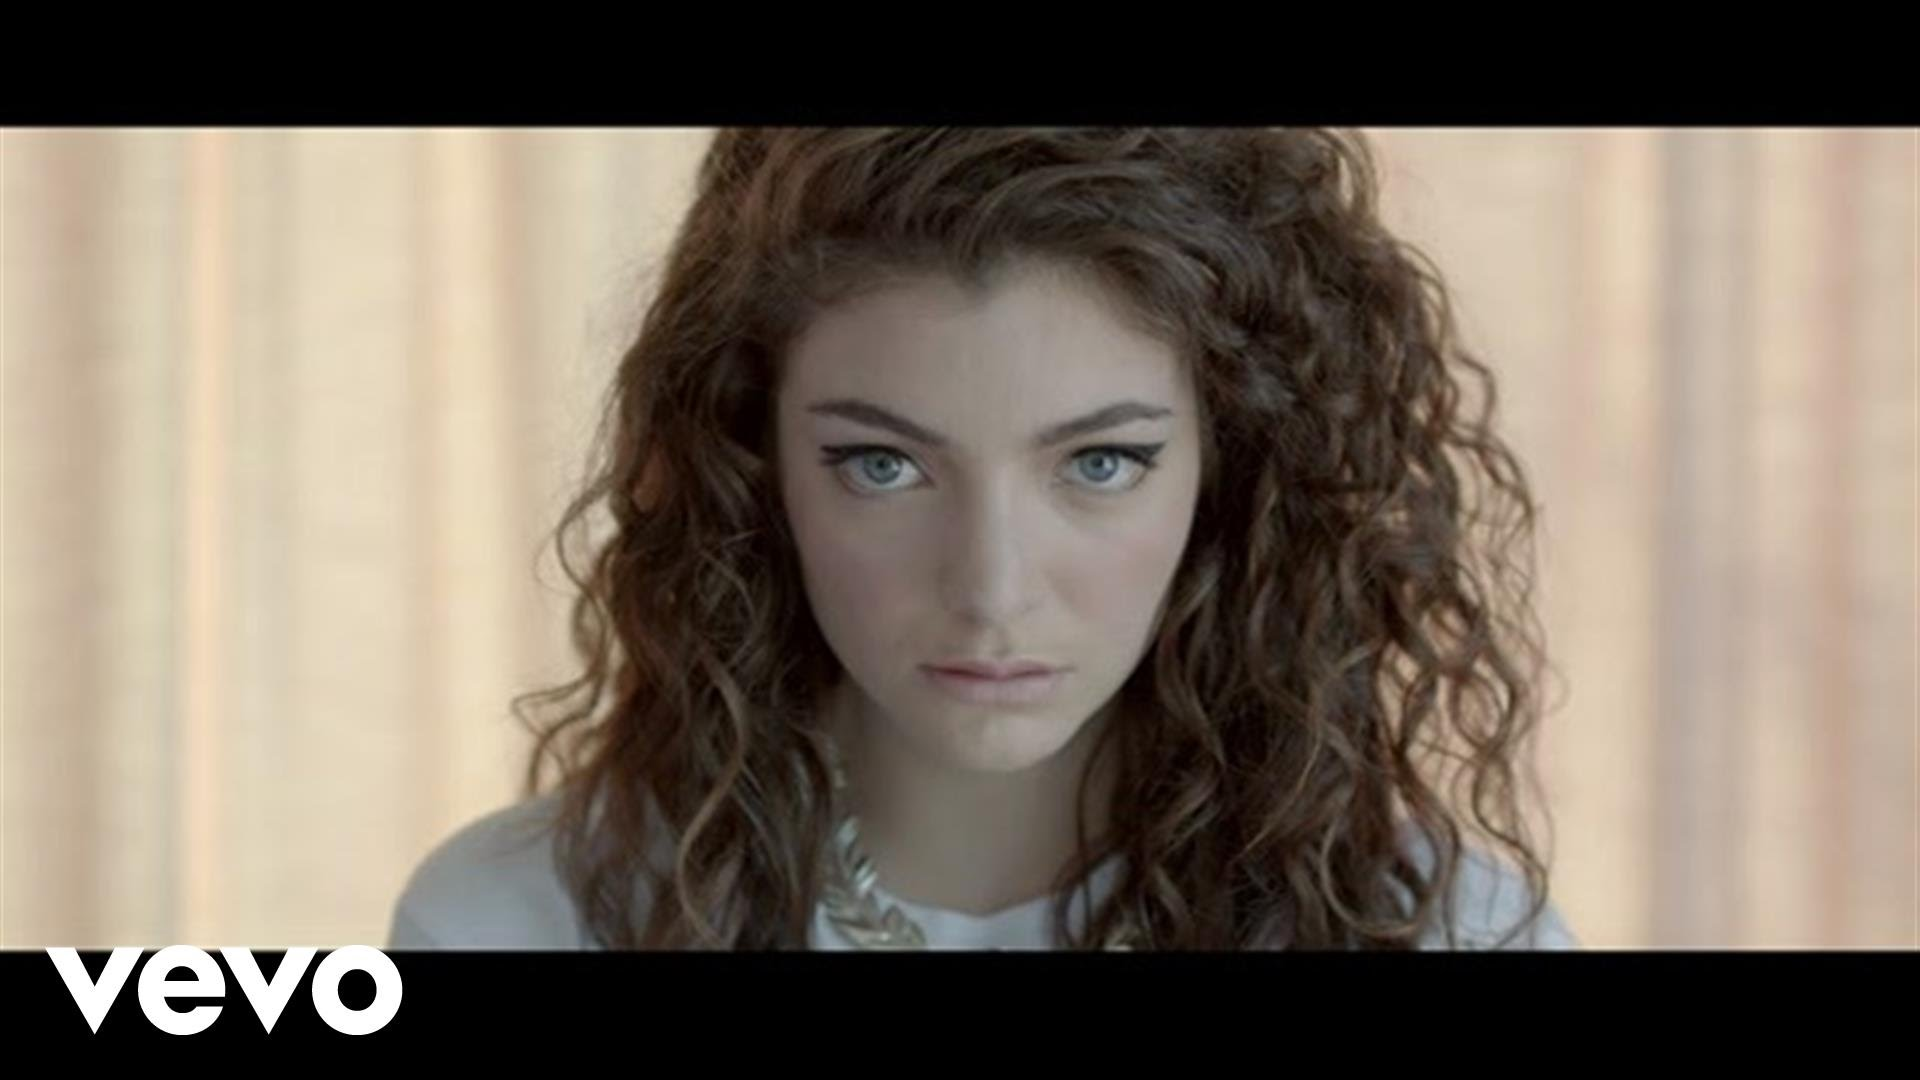 Top 5 best Lorde songs from 'Pure Heroine'